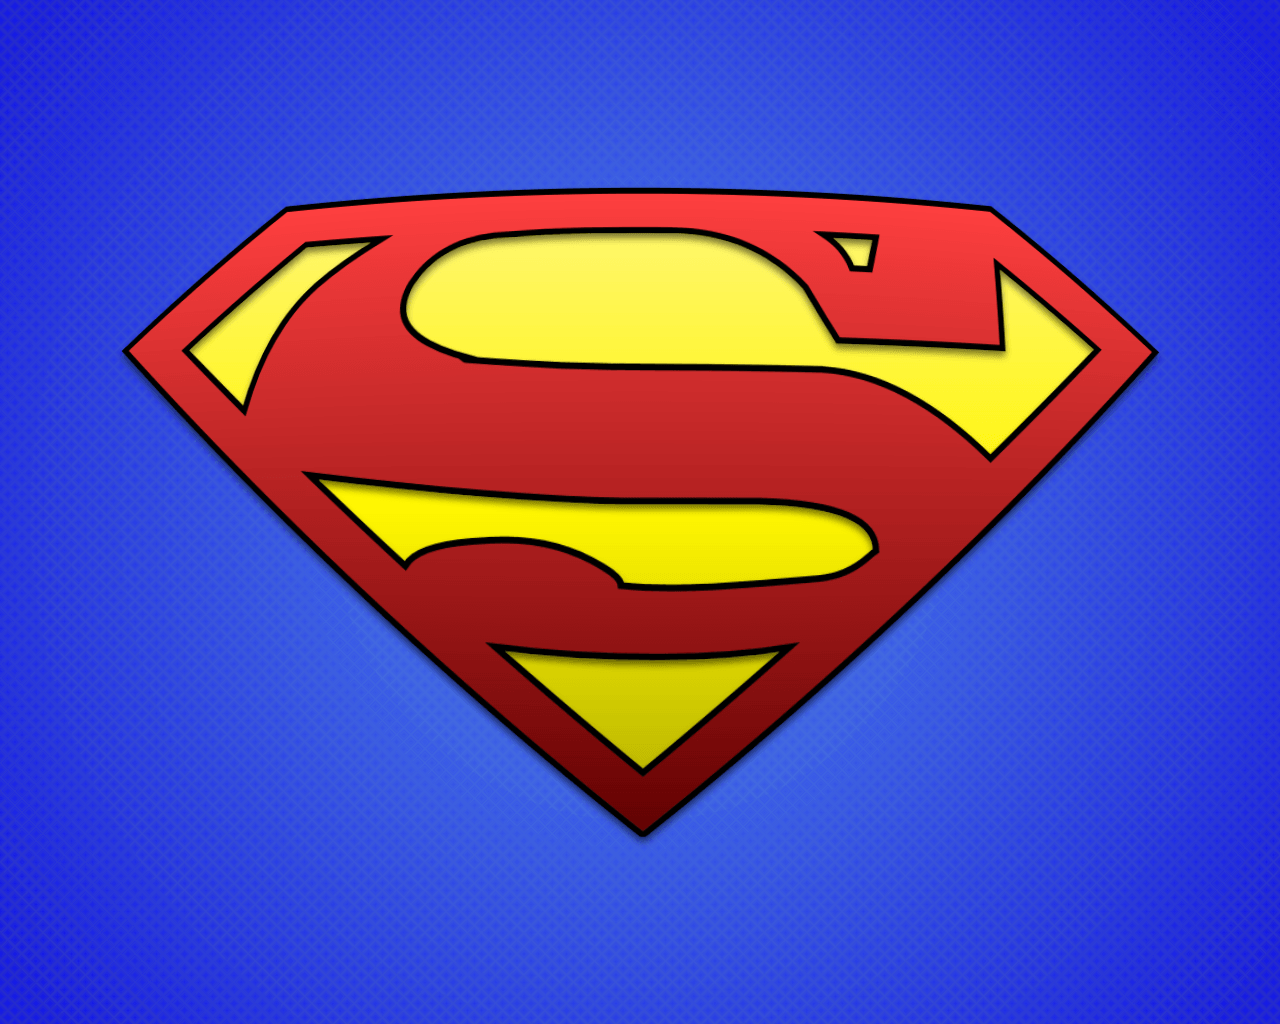 Superman Logo Wallpapers - Wallpaper Cave